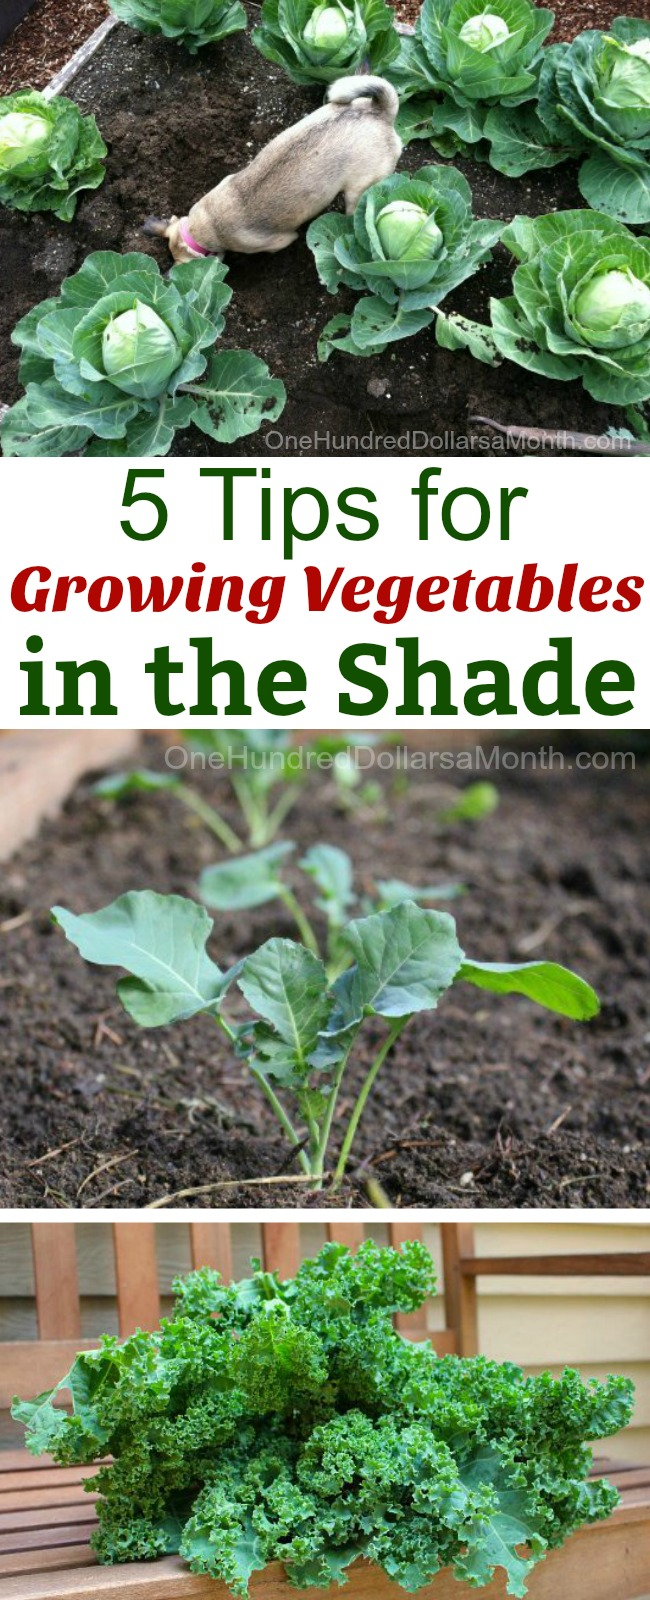 5 Tips for Growing Vegetables in the Shade